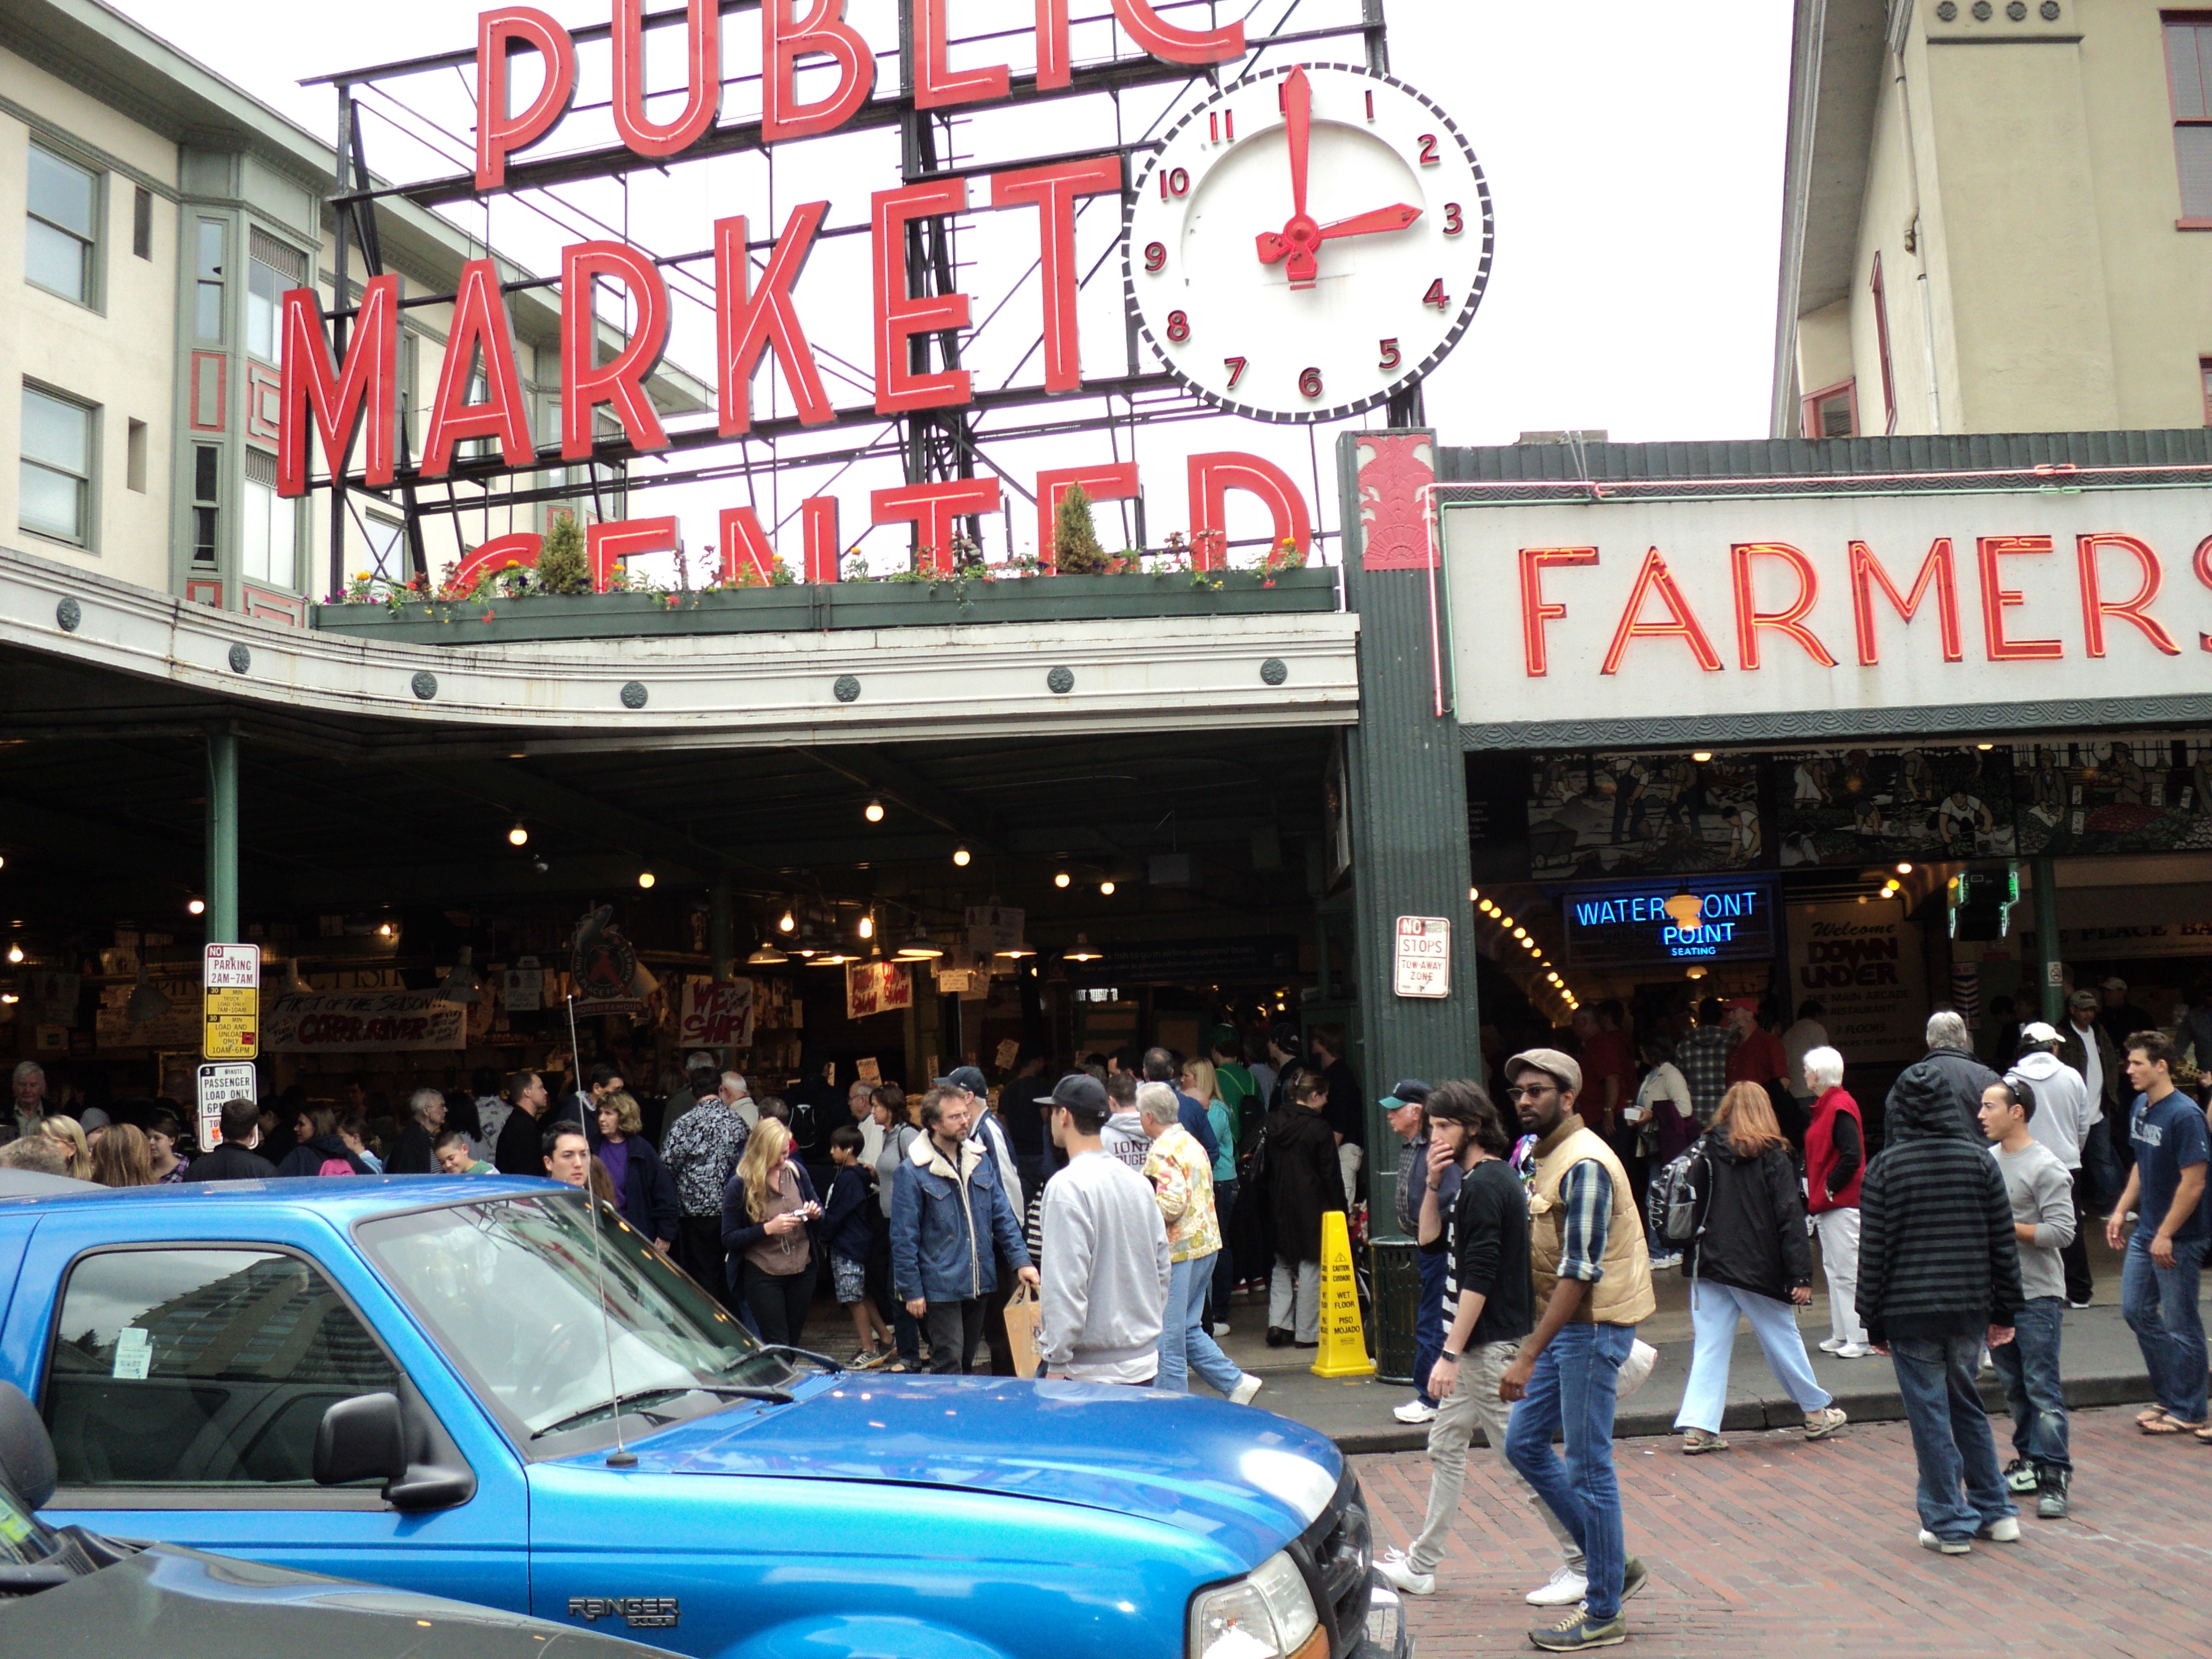 pike place market and work environment 3579 reviews of pike place market some say tourist trap, some say heart of seattle either way - it is a must do regardless of if you're a tourist or a native seattleite.